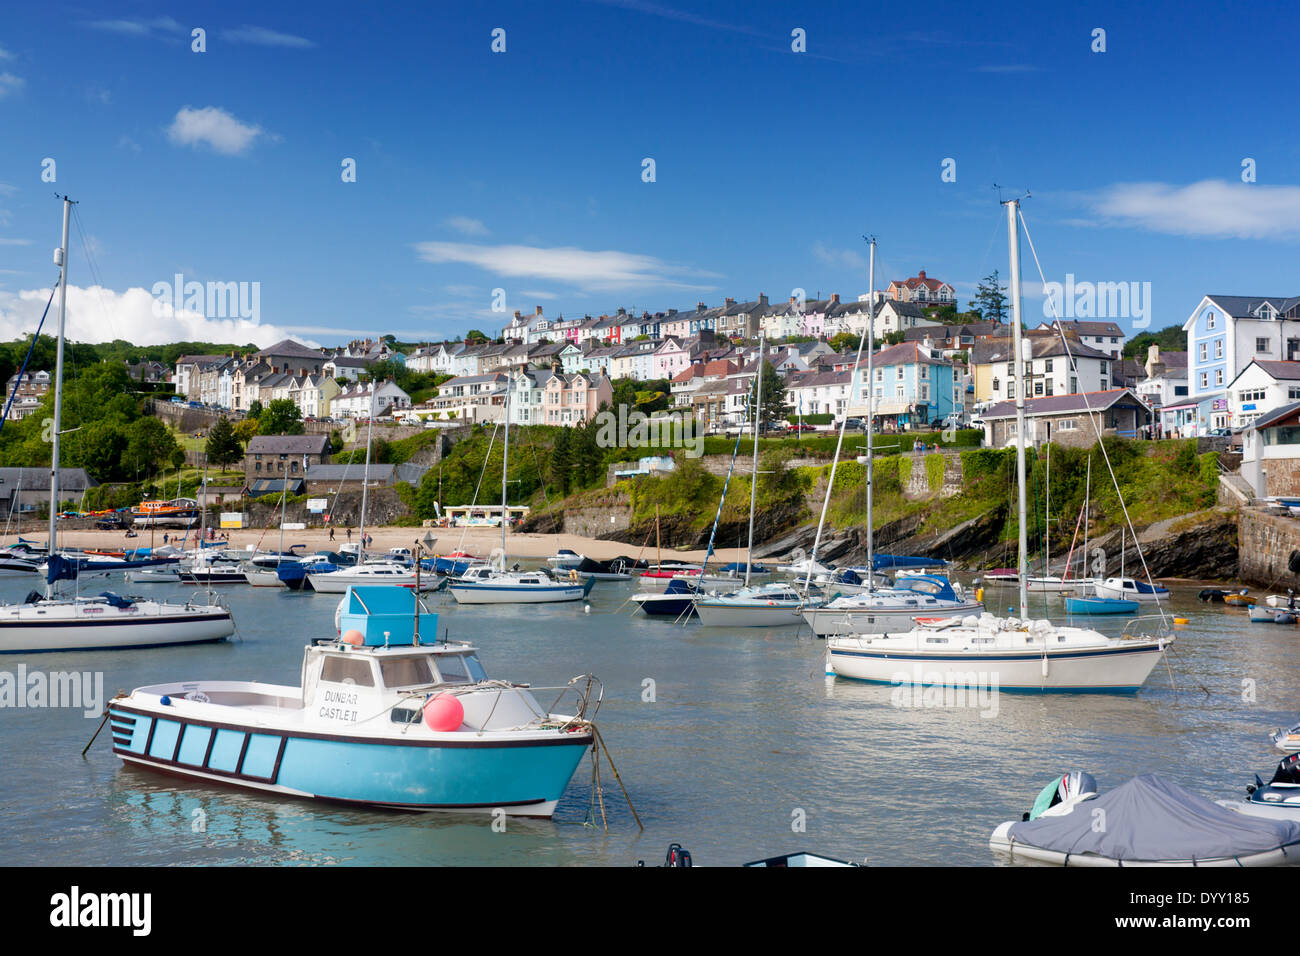 New Quay Cei Newydd Cardigan bay Harbour and town Mid Wales UK - Stock Image